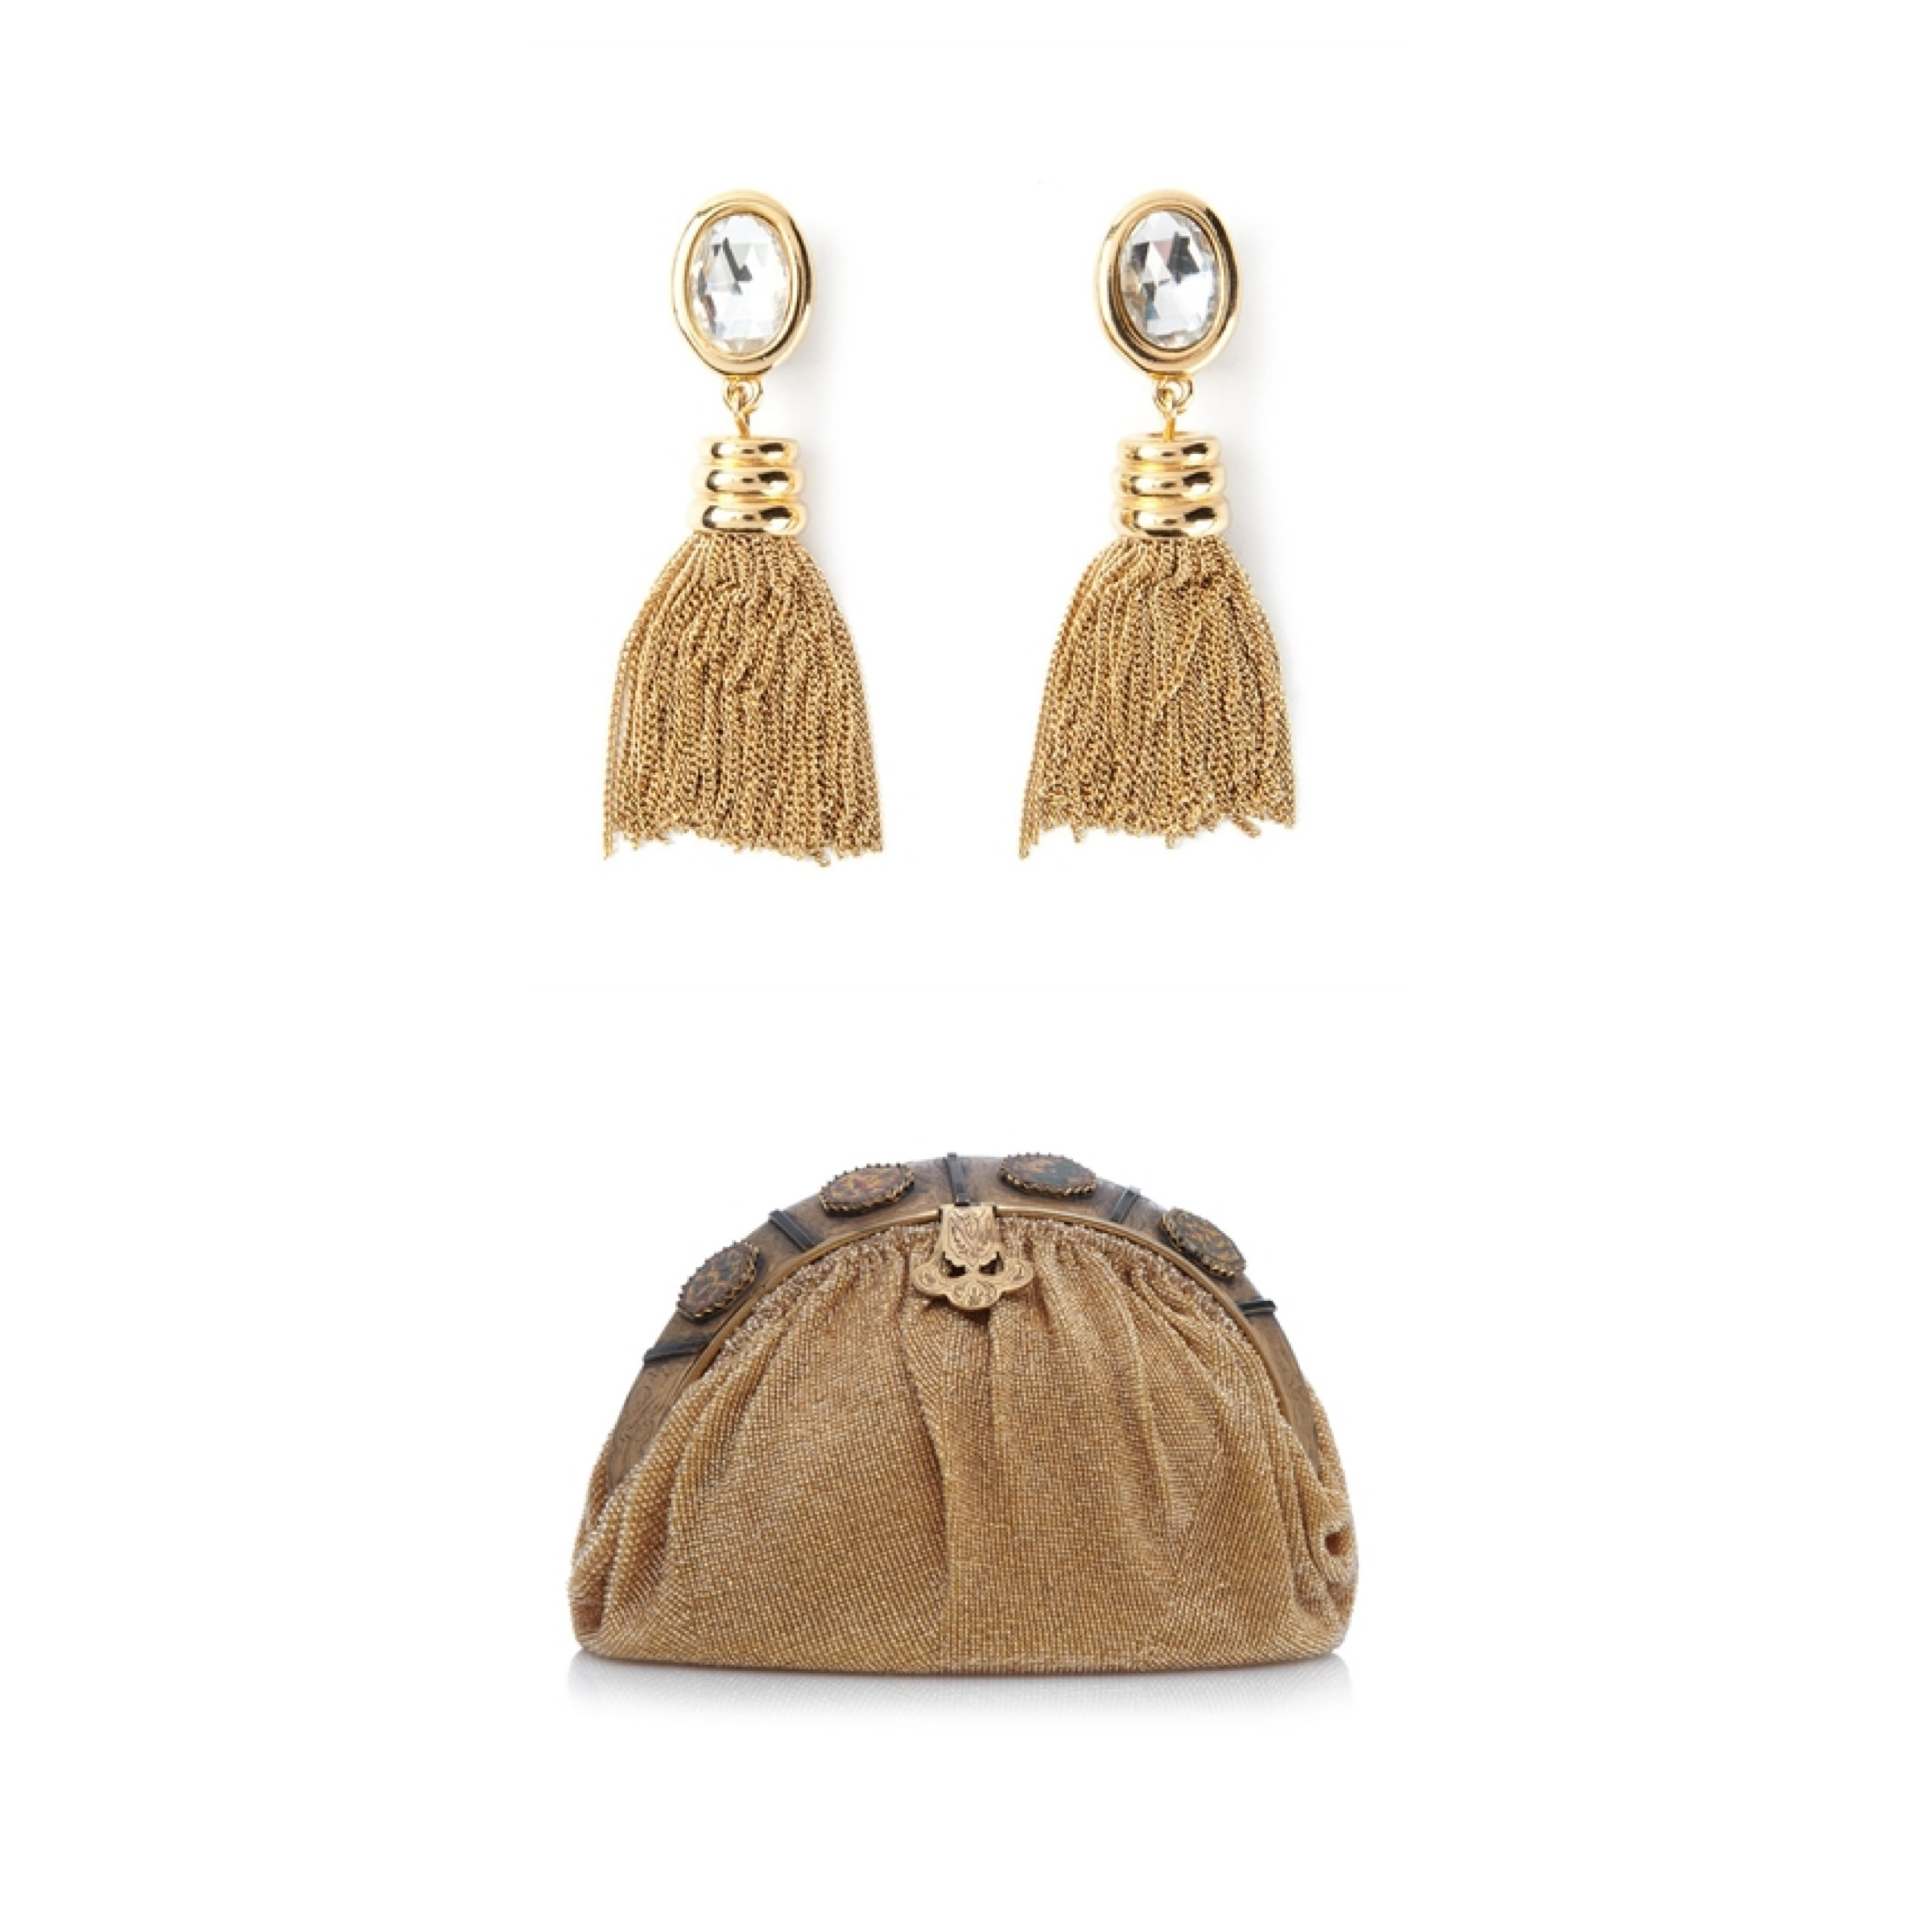 Gold Givenchy Vintage earrings Gold beaded 1940s clutch